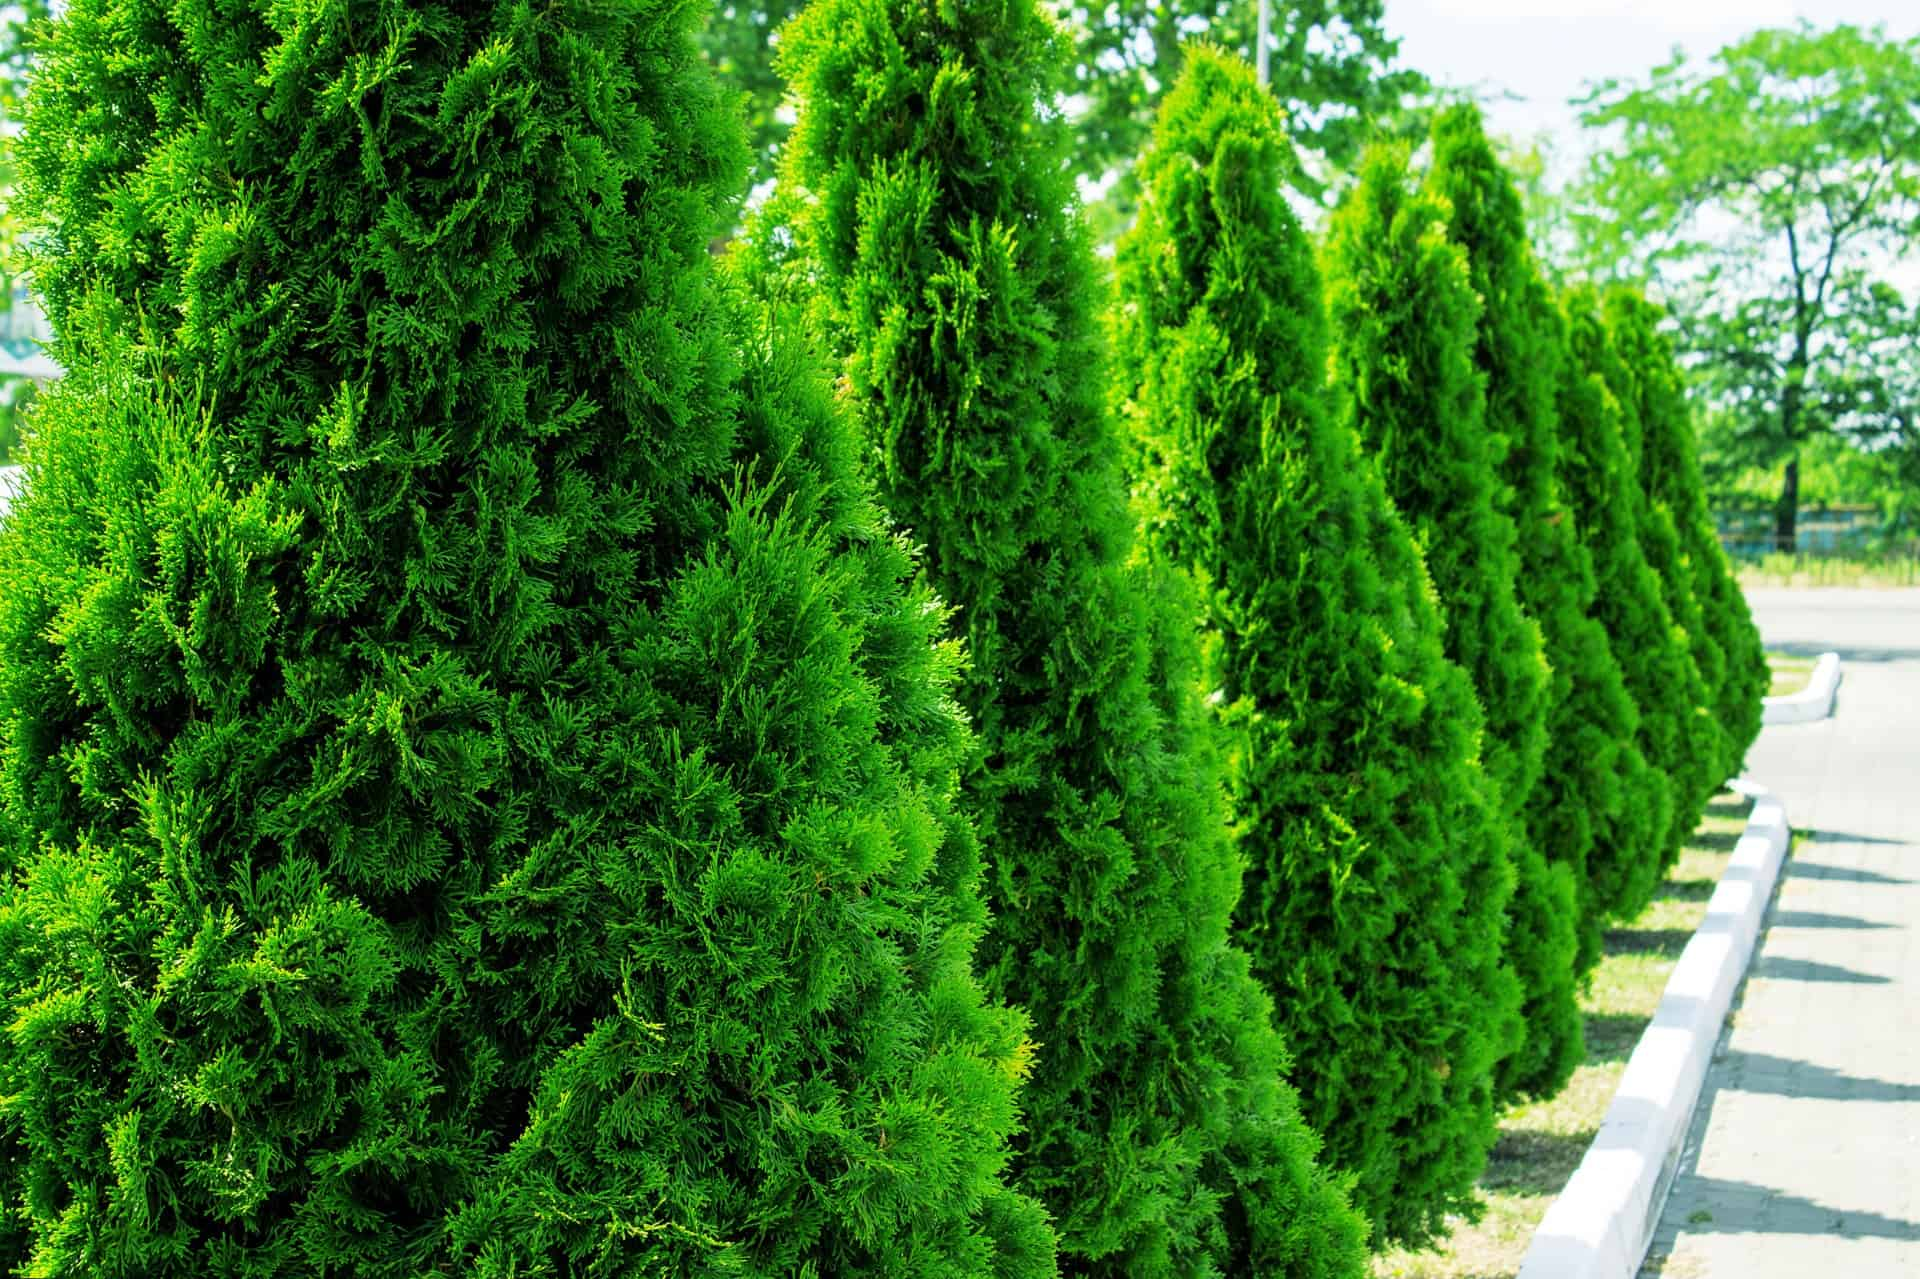 green giant arborvitae is a great tree for privacy